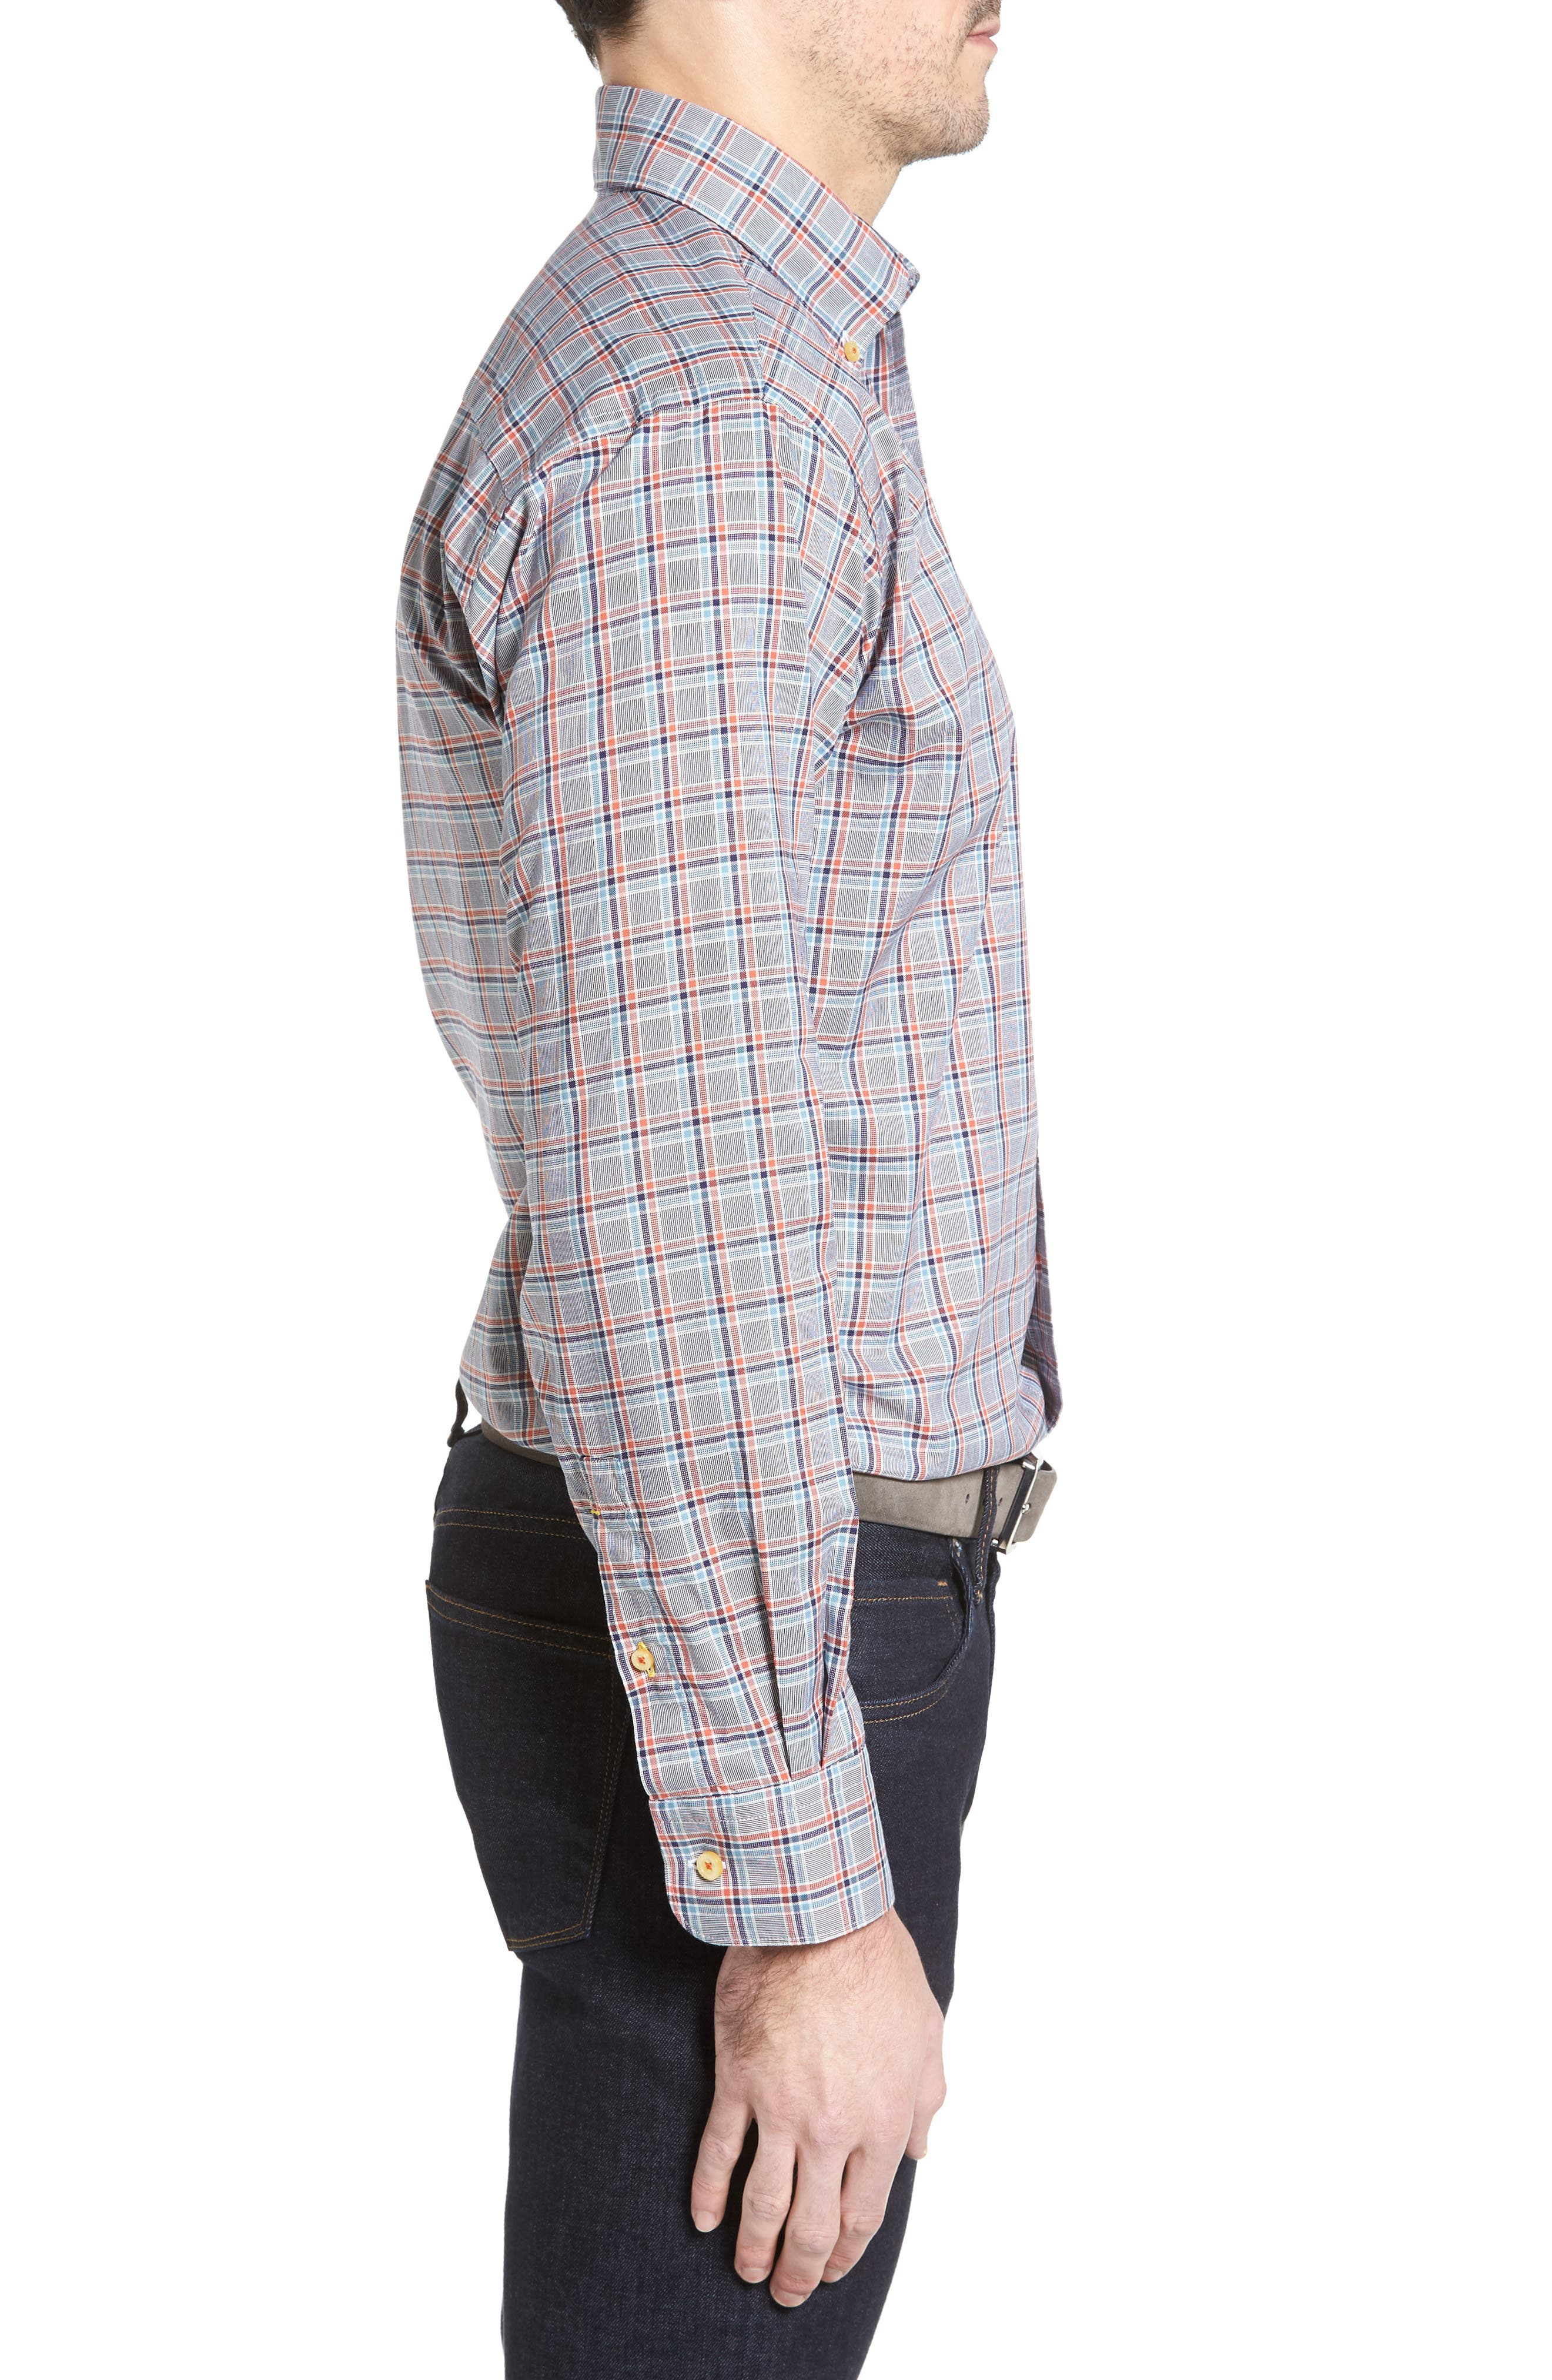 Anderson Classic Fit Plaid Oxford Sport Shirt,                             Alternate thumbnail 3, color,                             401